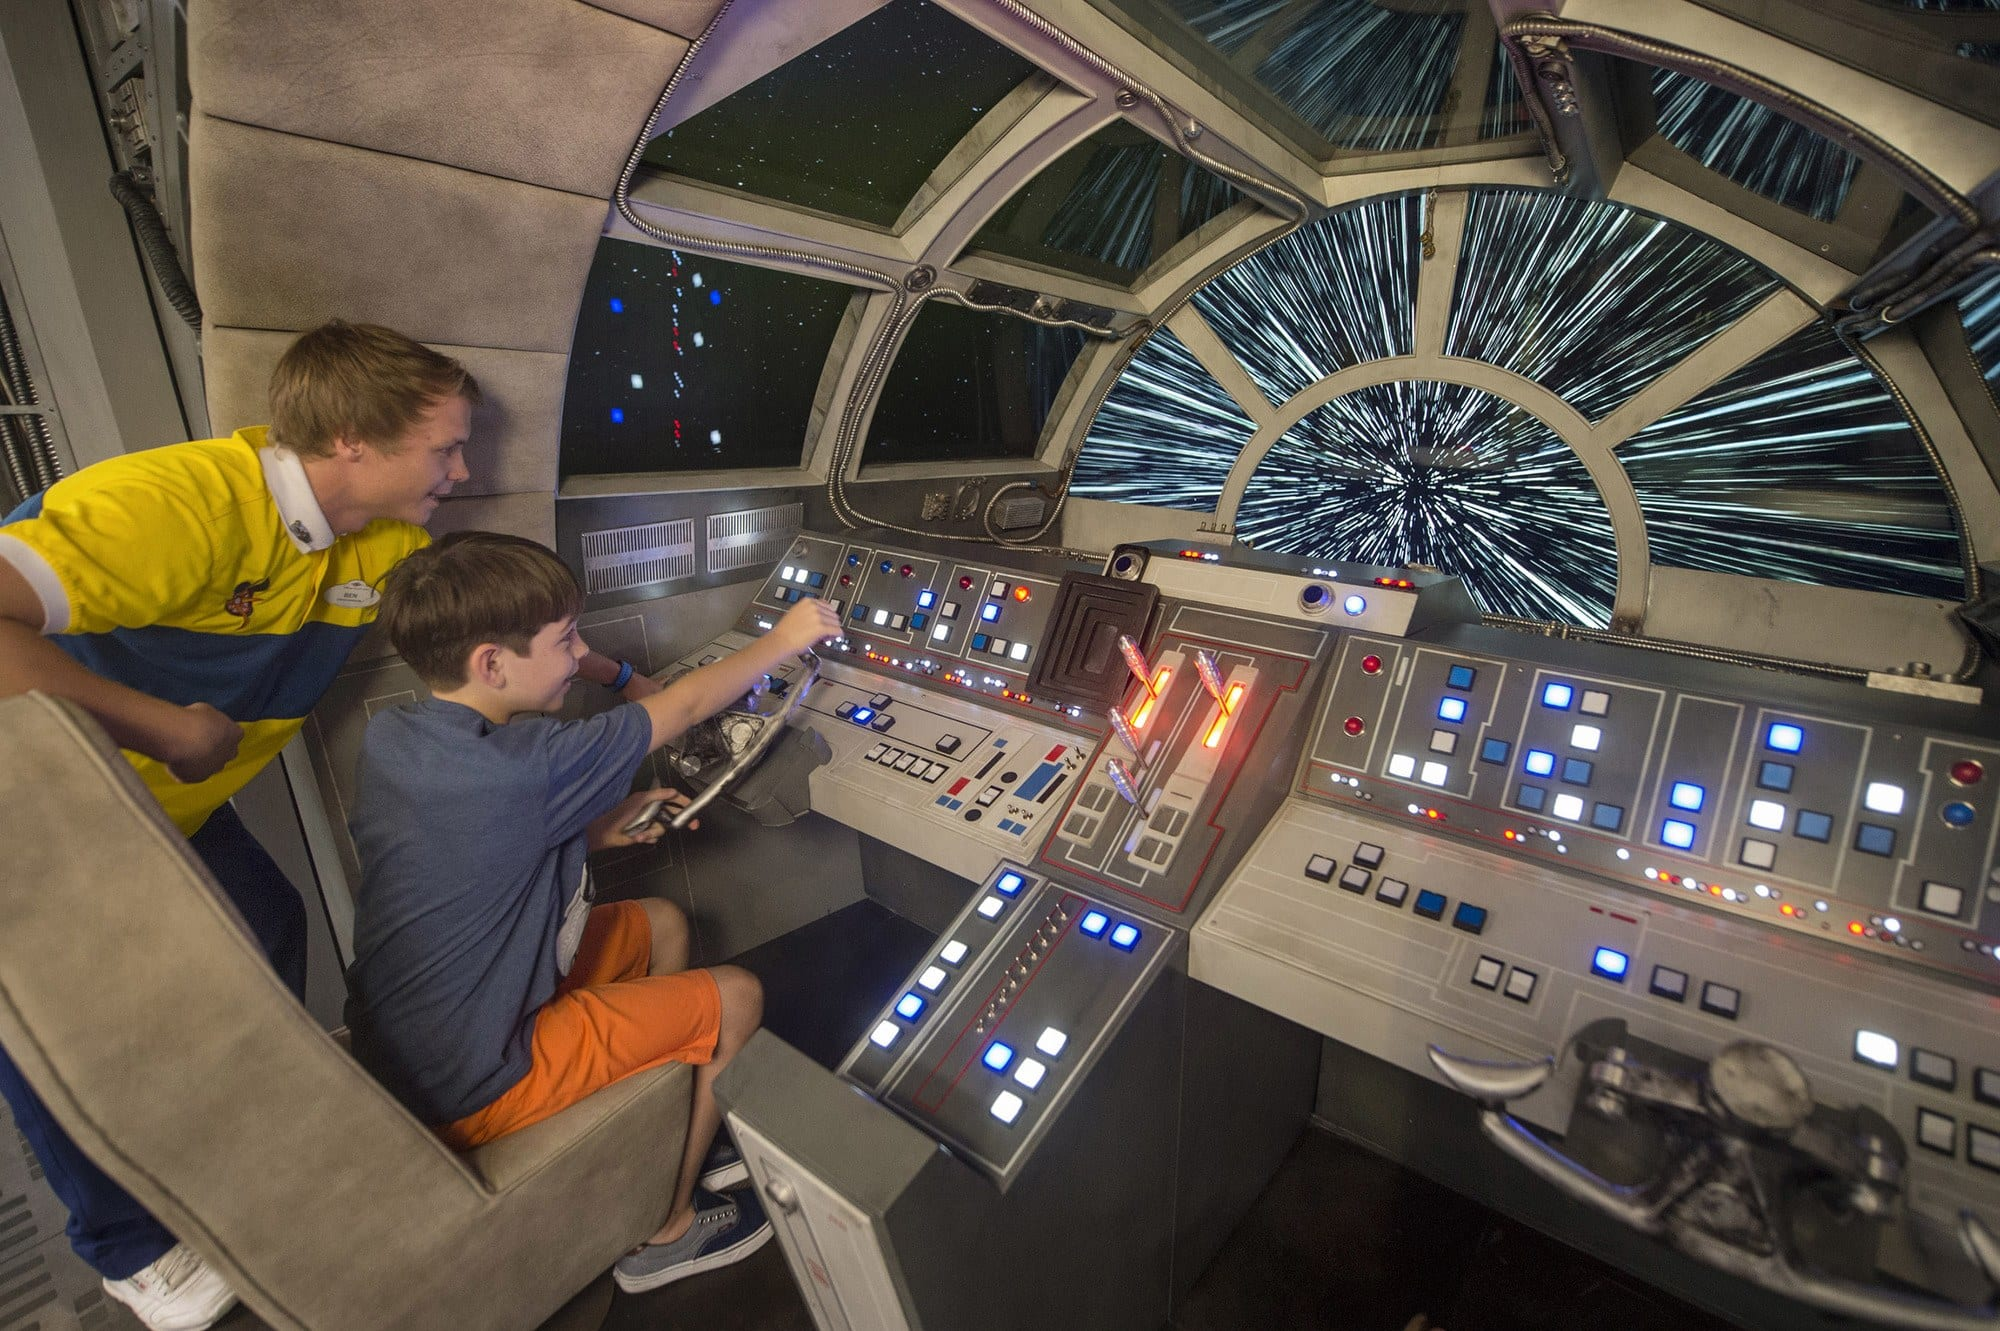 Aboard Disney Dream, kids are transported to a far away galaxy at Star Wars: Millennium Falcon, a Force-filled play area inspired by the spacecraft from the legendary saga